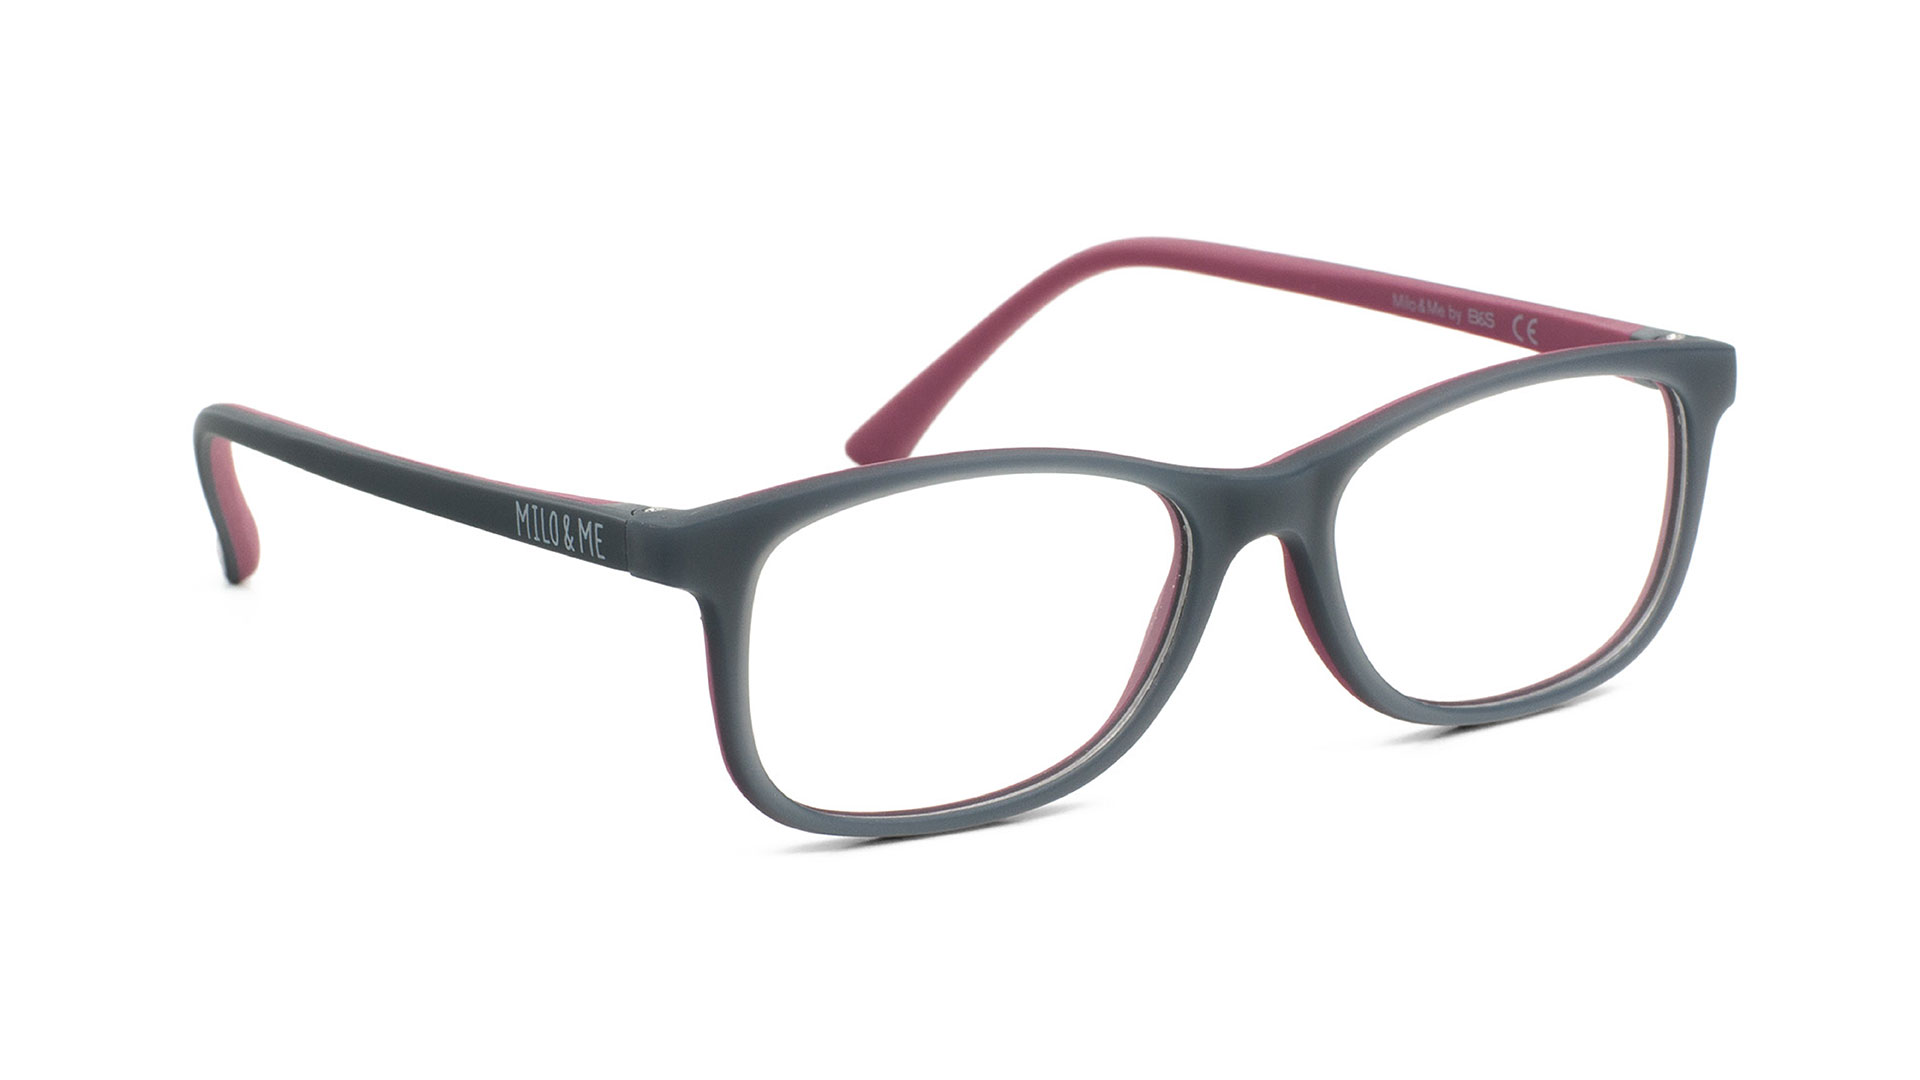 Grey Blackberry H85041-22 - Milo & Me Eyewear - Optimum RX Lens Specialists